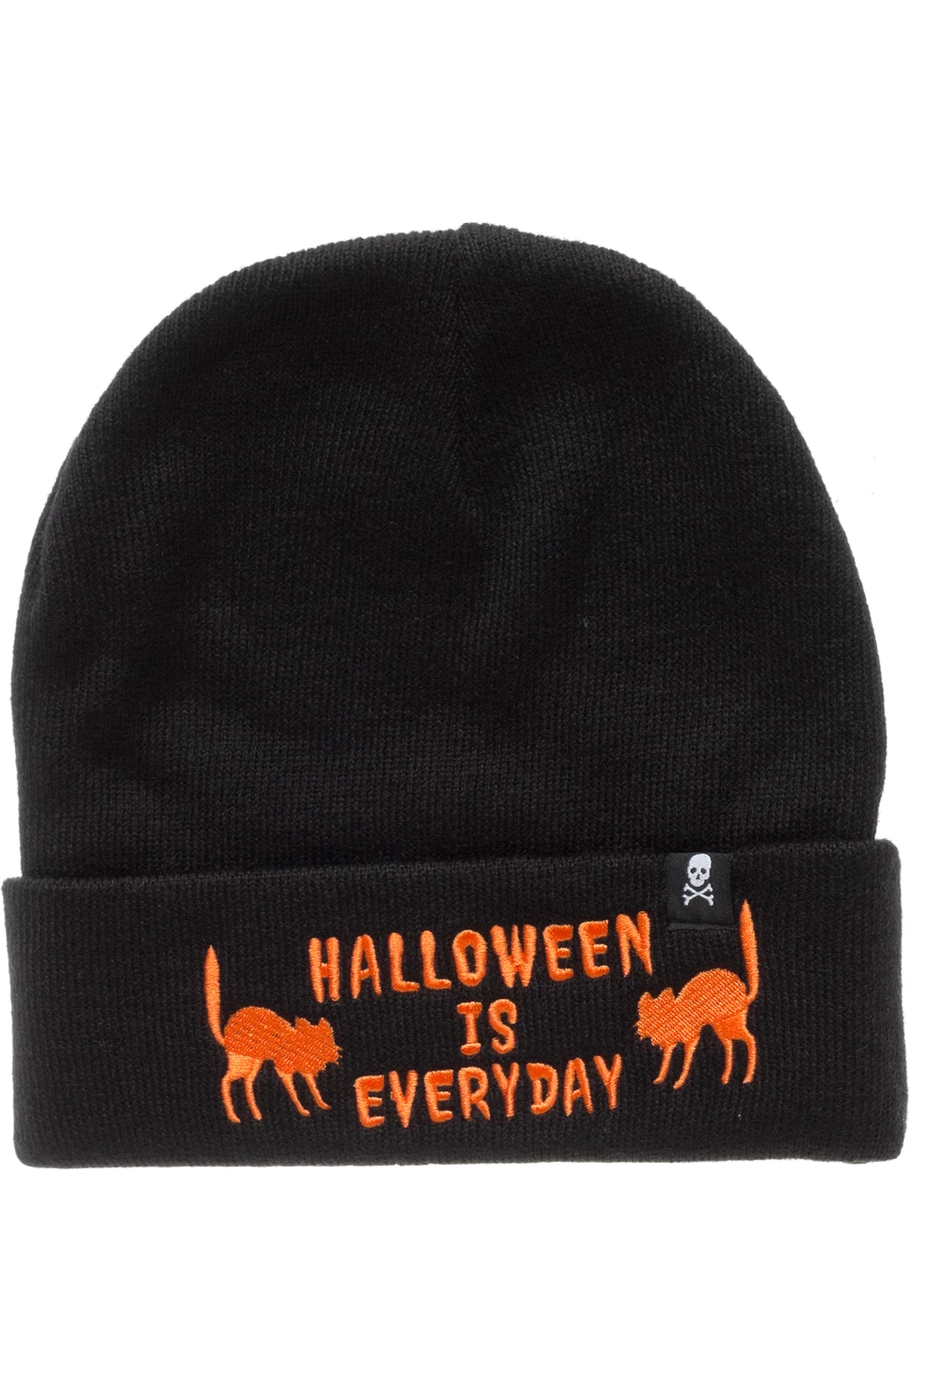 Halloween Everyday Beanie